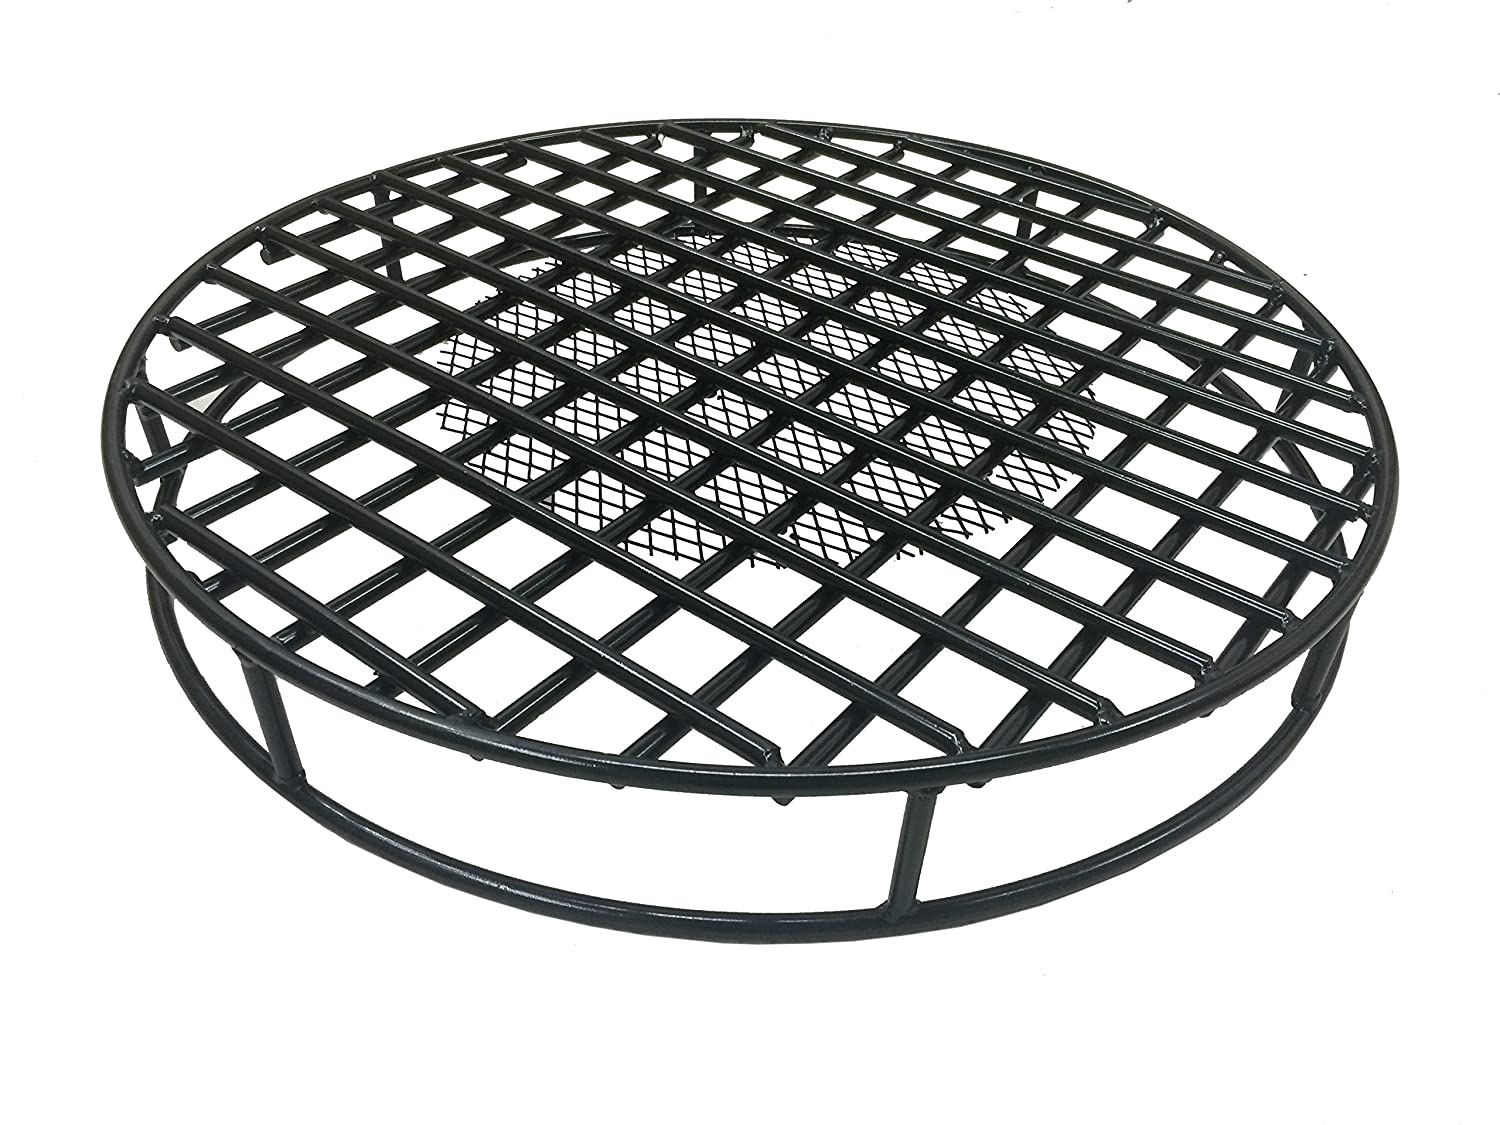 Amazon.com : Walden Fire Pit Grate Round 29.5'' Diameter Premium Heavy Duty  Steel Grate with Ember Catcher for Outdoor Fire Pits : Garden & Outdoor - Amazon.com : Walden Fire Pit Grate Round 29.5'' Diameter Premium